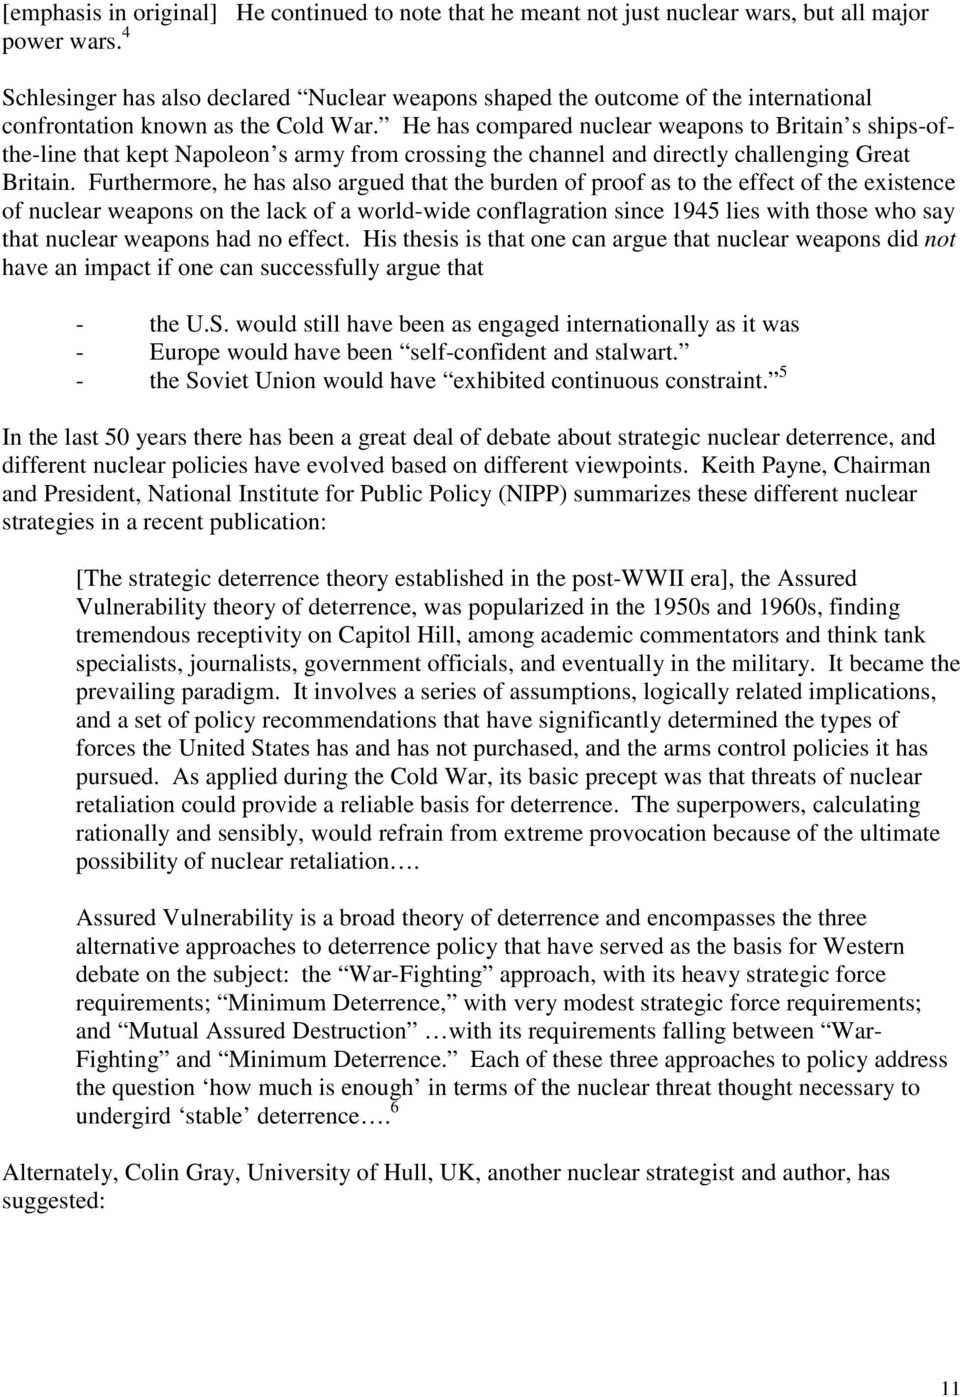 u.s nuclear weapons policy pdf